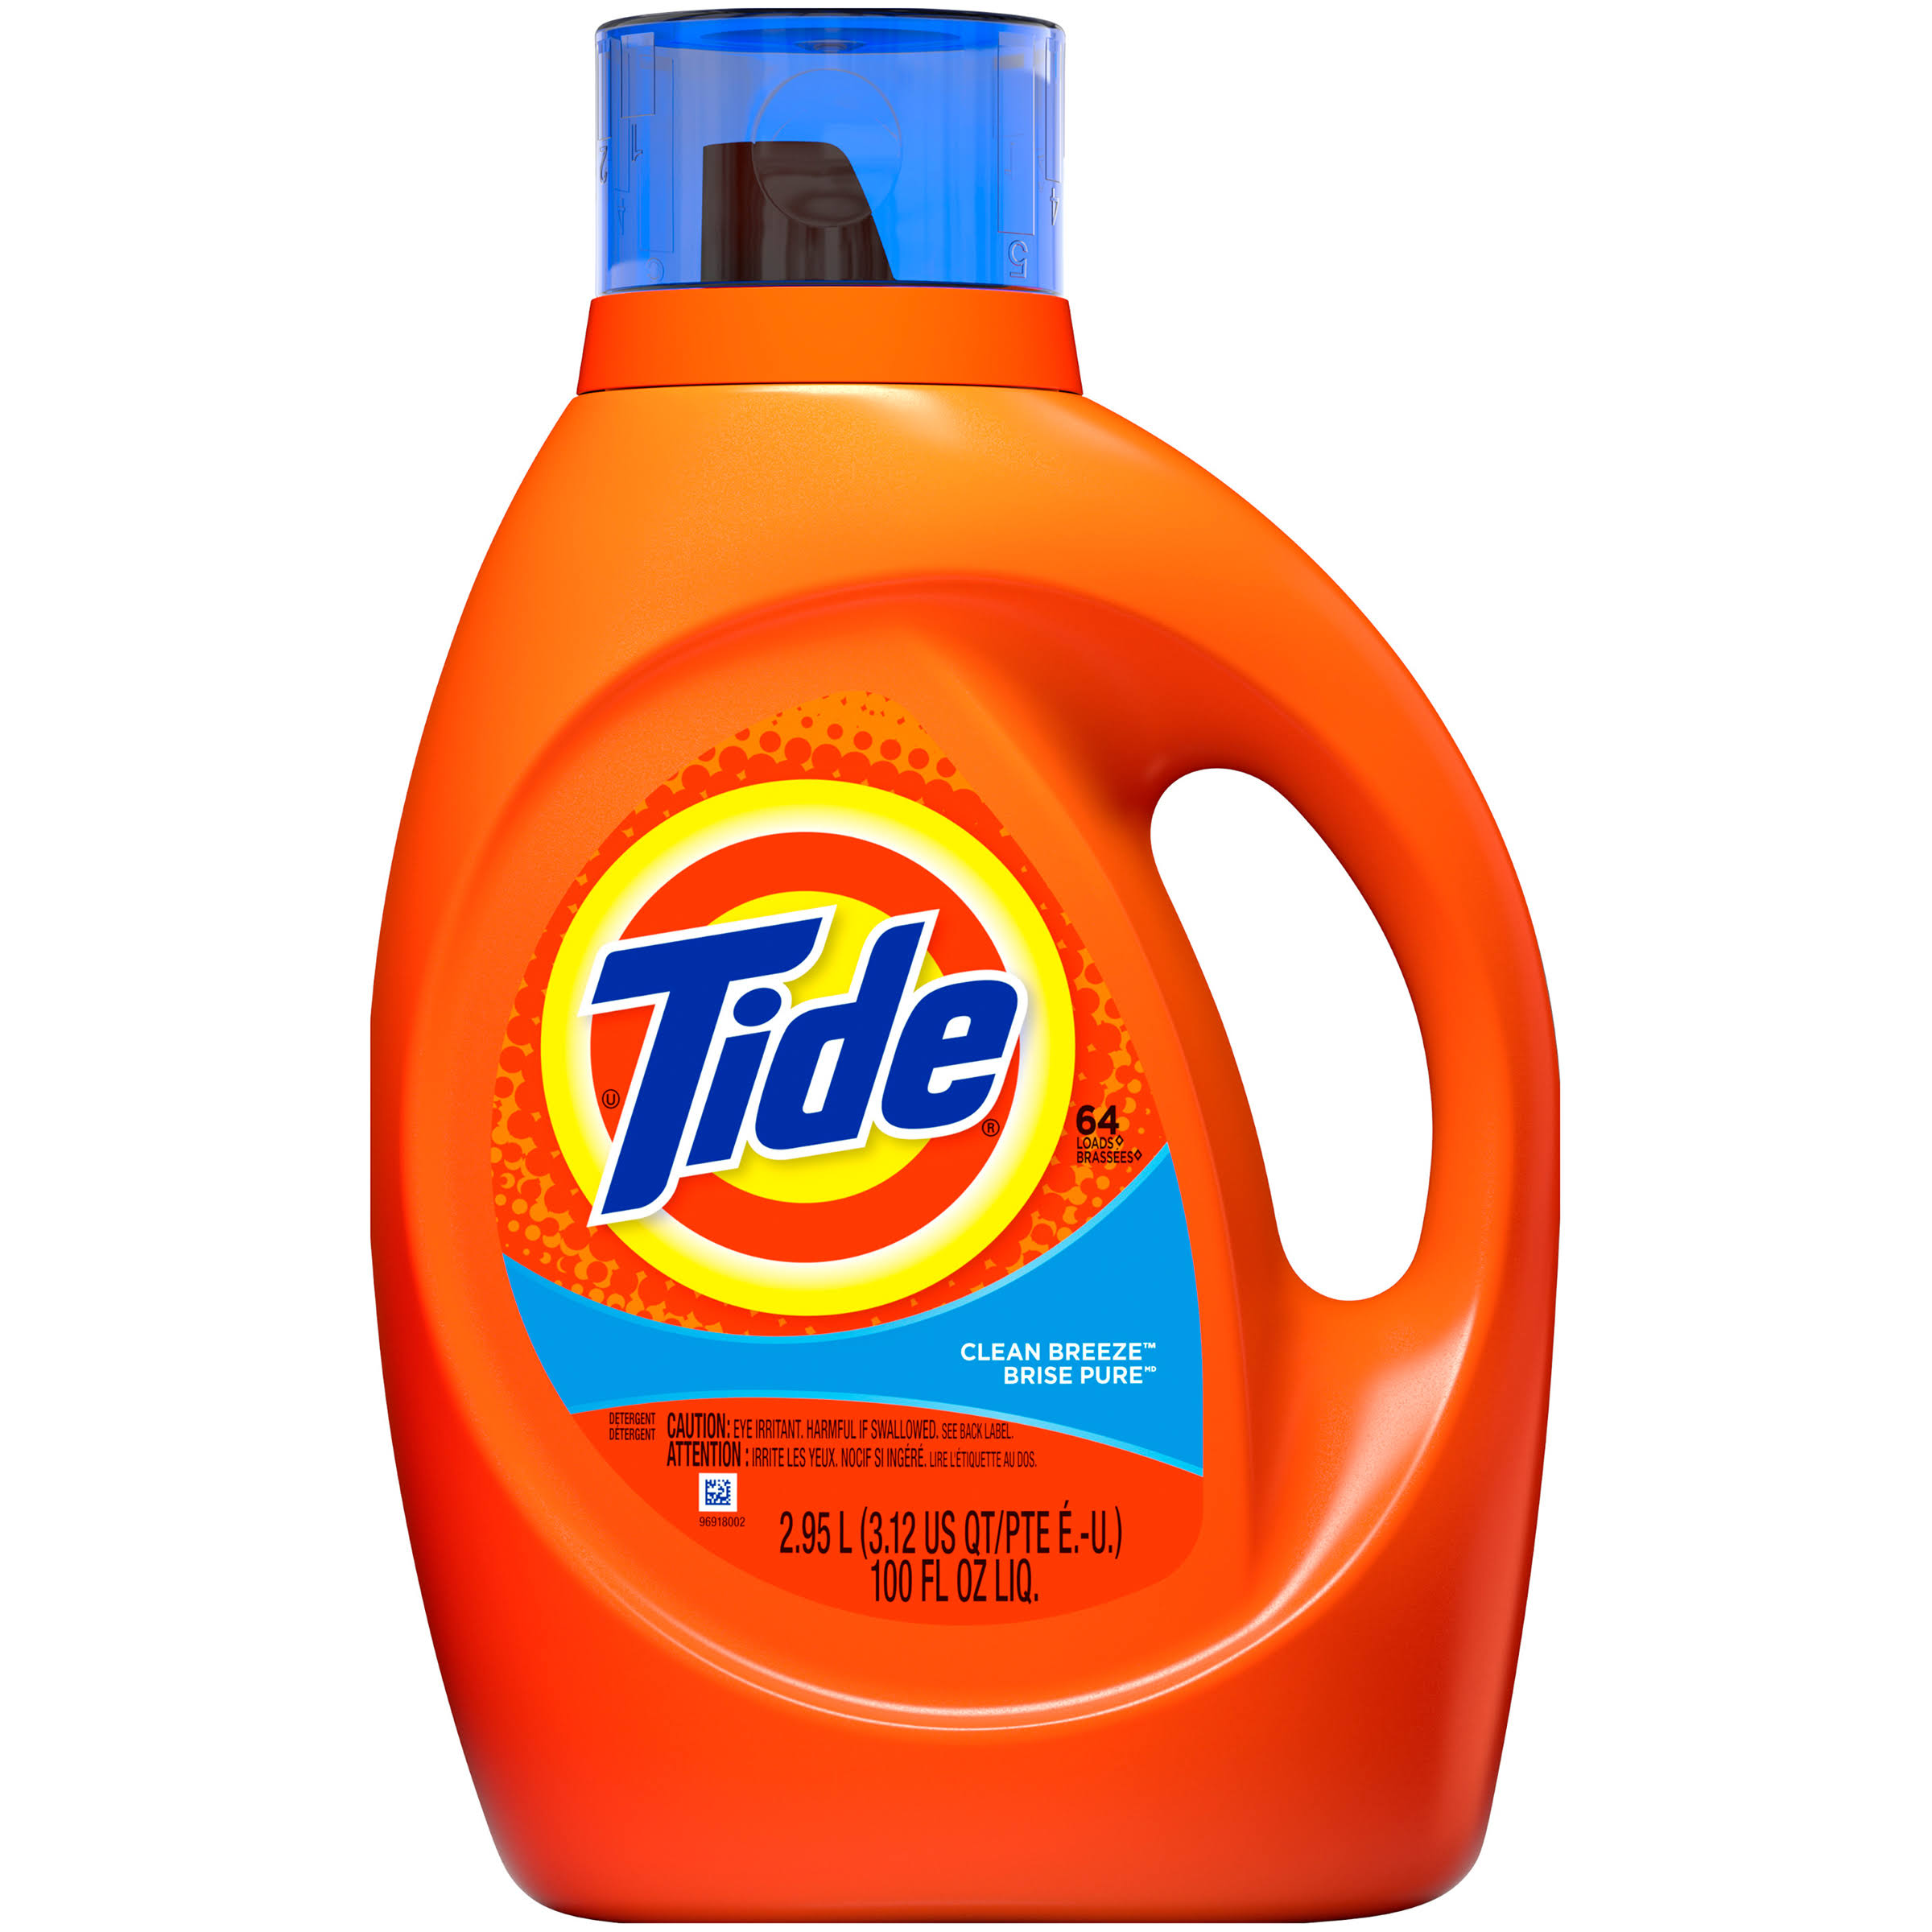 Tide Liquid Laundry Detergent - Clean Breeze Scent, 100oz